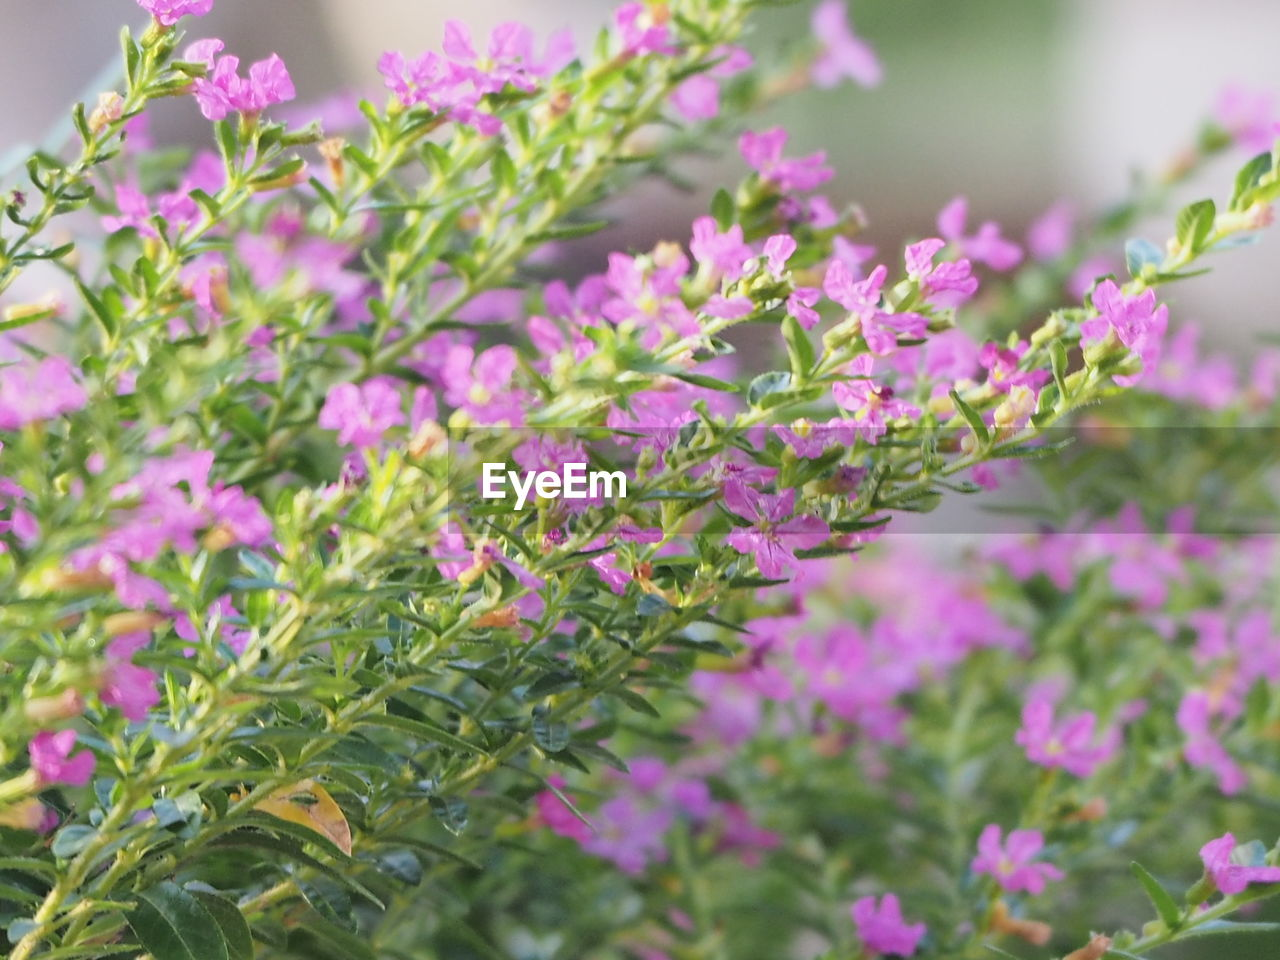 plant, growth, beauty in nature, flowering plant, flower, plant part, freshness, leaf, close-up, vulnerability, fragility, focus on foreground, nature, pink color, day, selective focus, green color, no people, outdoors, inflorescence, purple, flower head